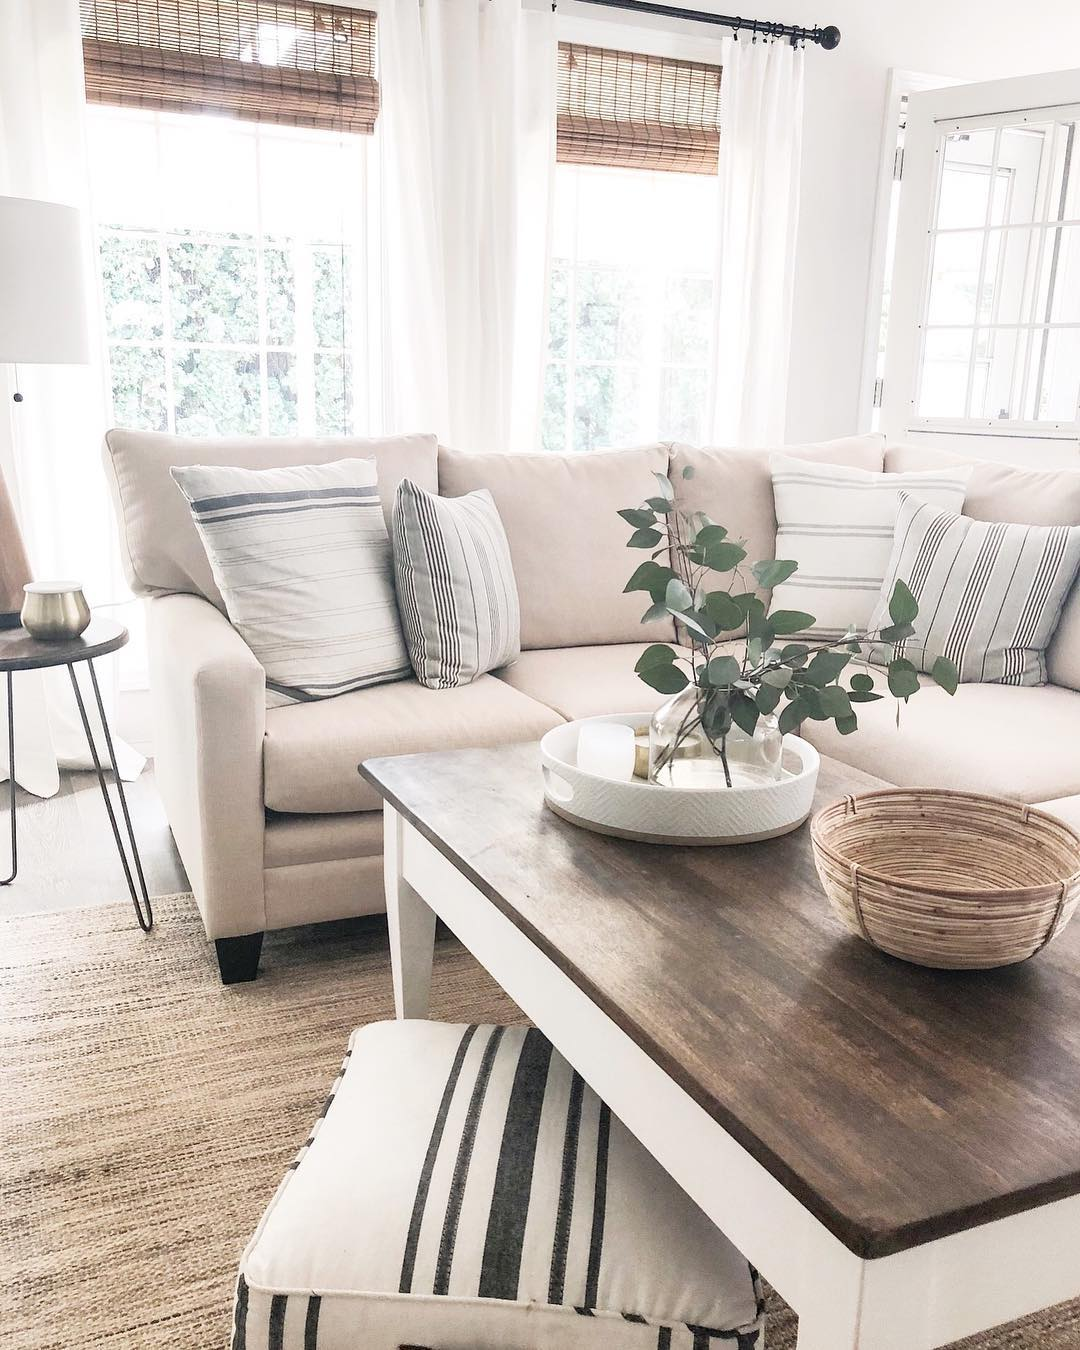 Home Decor: Neutral Home Decor Inspiration From Twine + Trowel